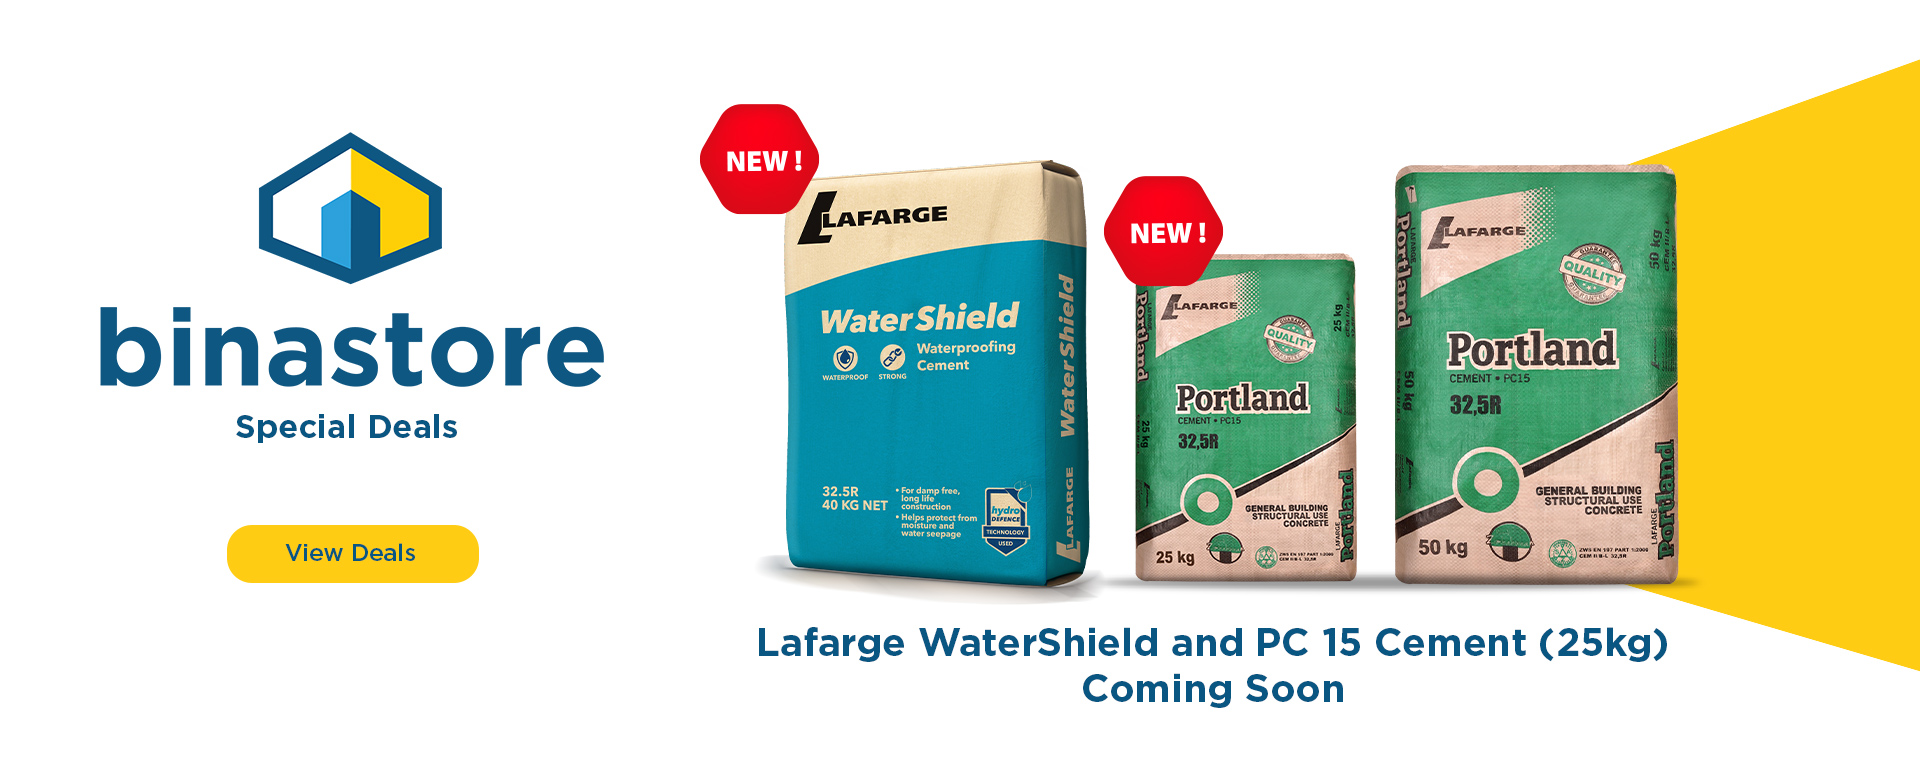 LaFarge Watershield and PC 15 Cement in 25kgs